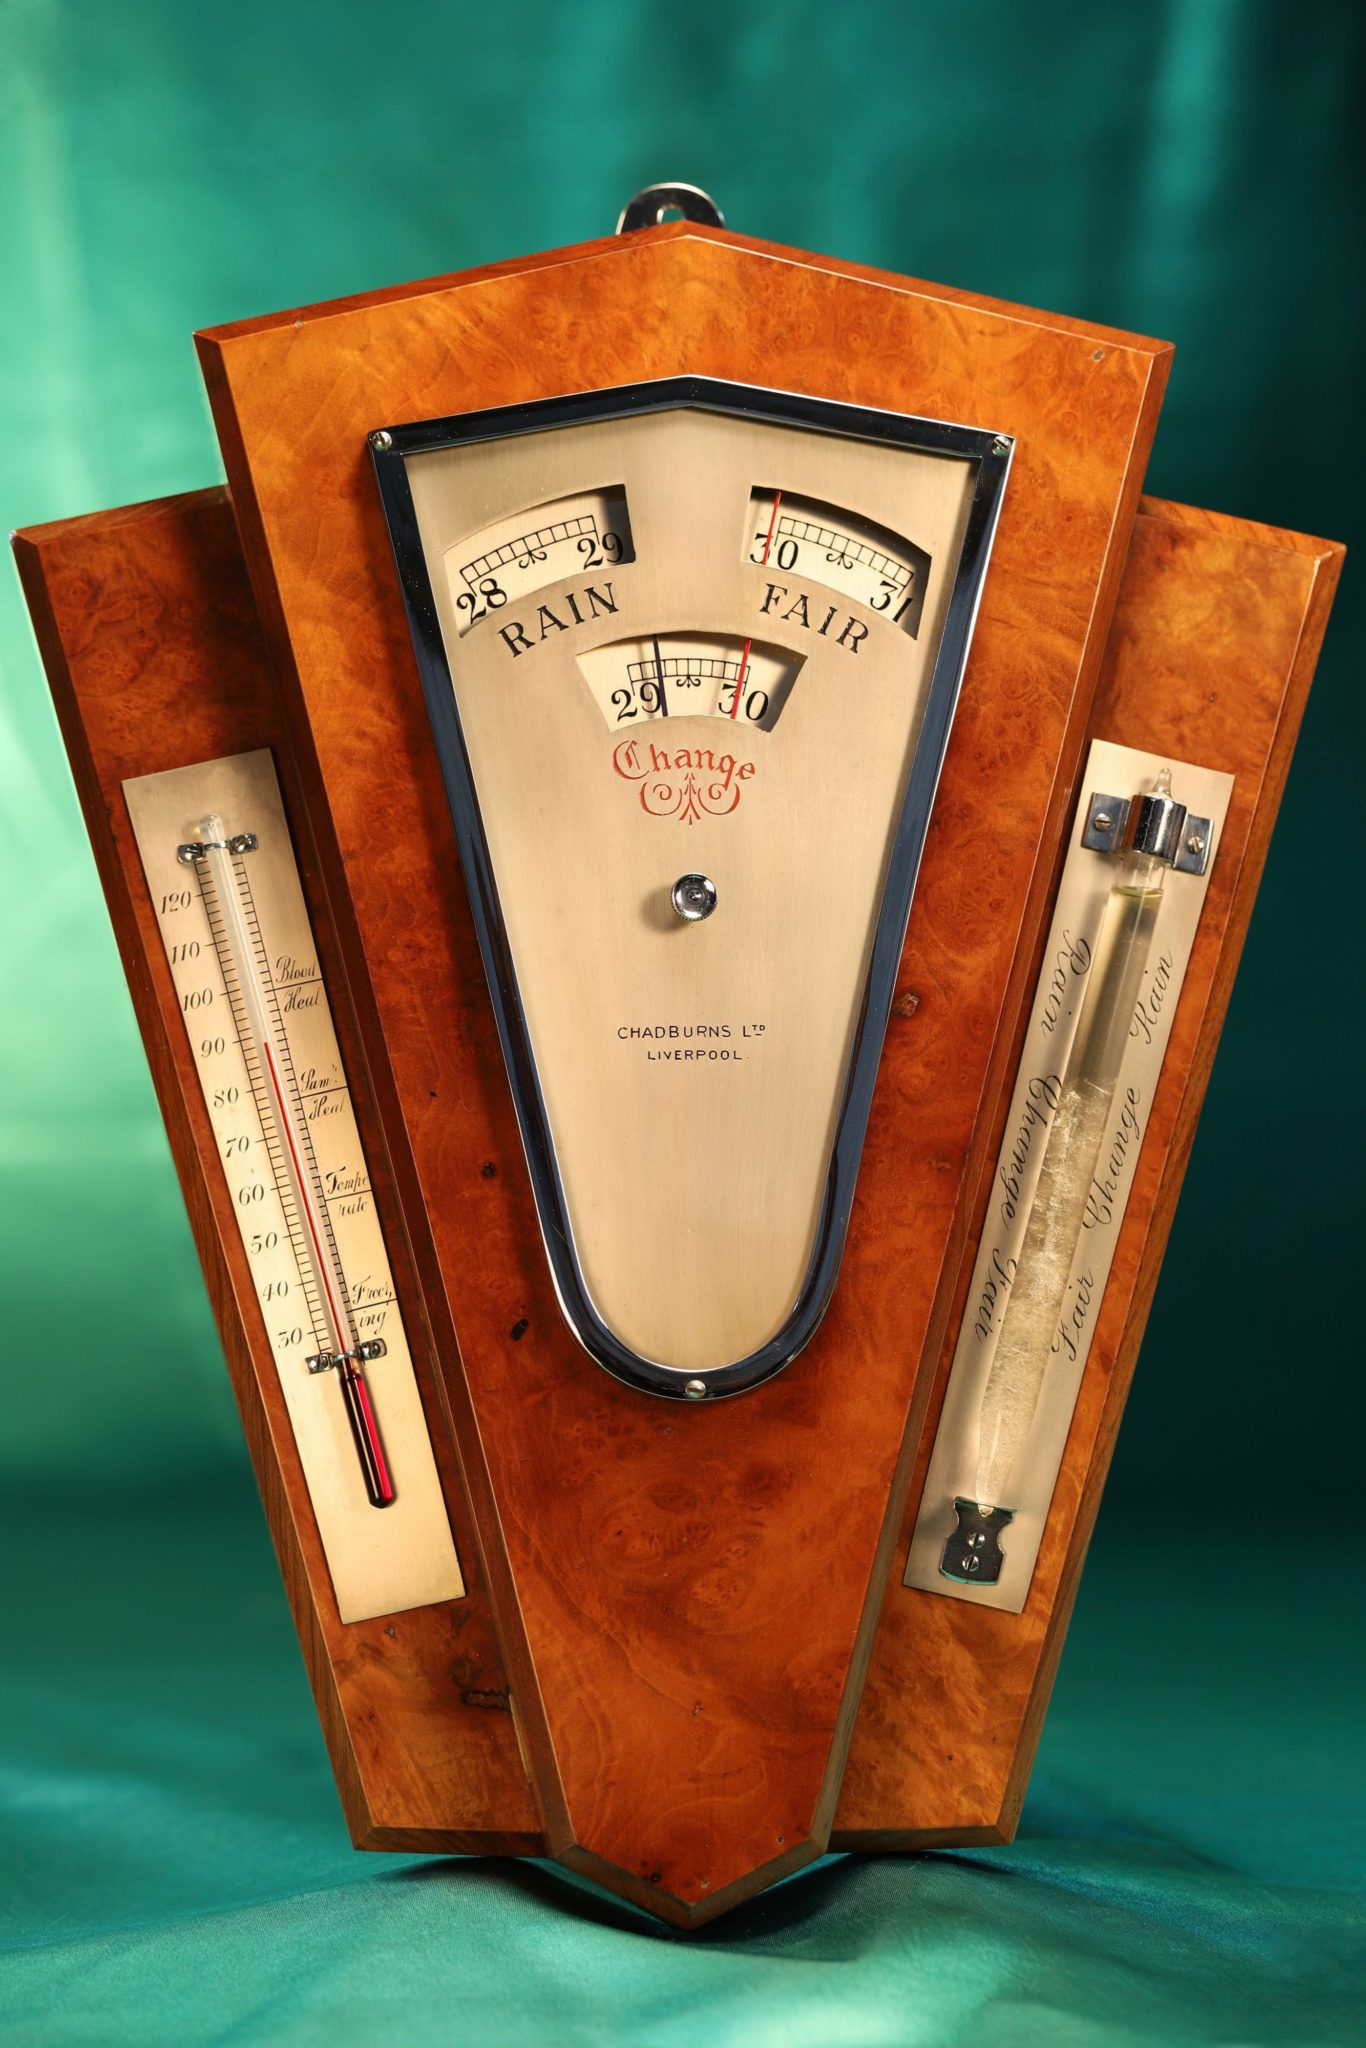 Image of Art Deco Weather Station by Chadburns Ltd c1930